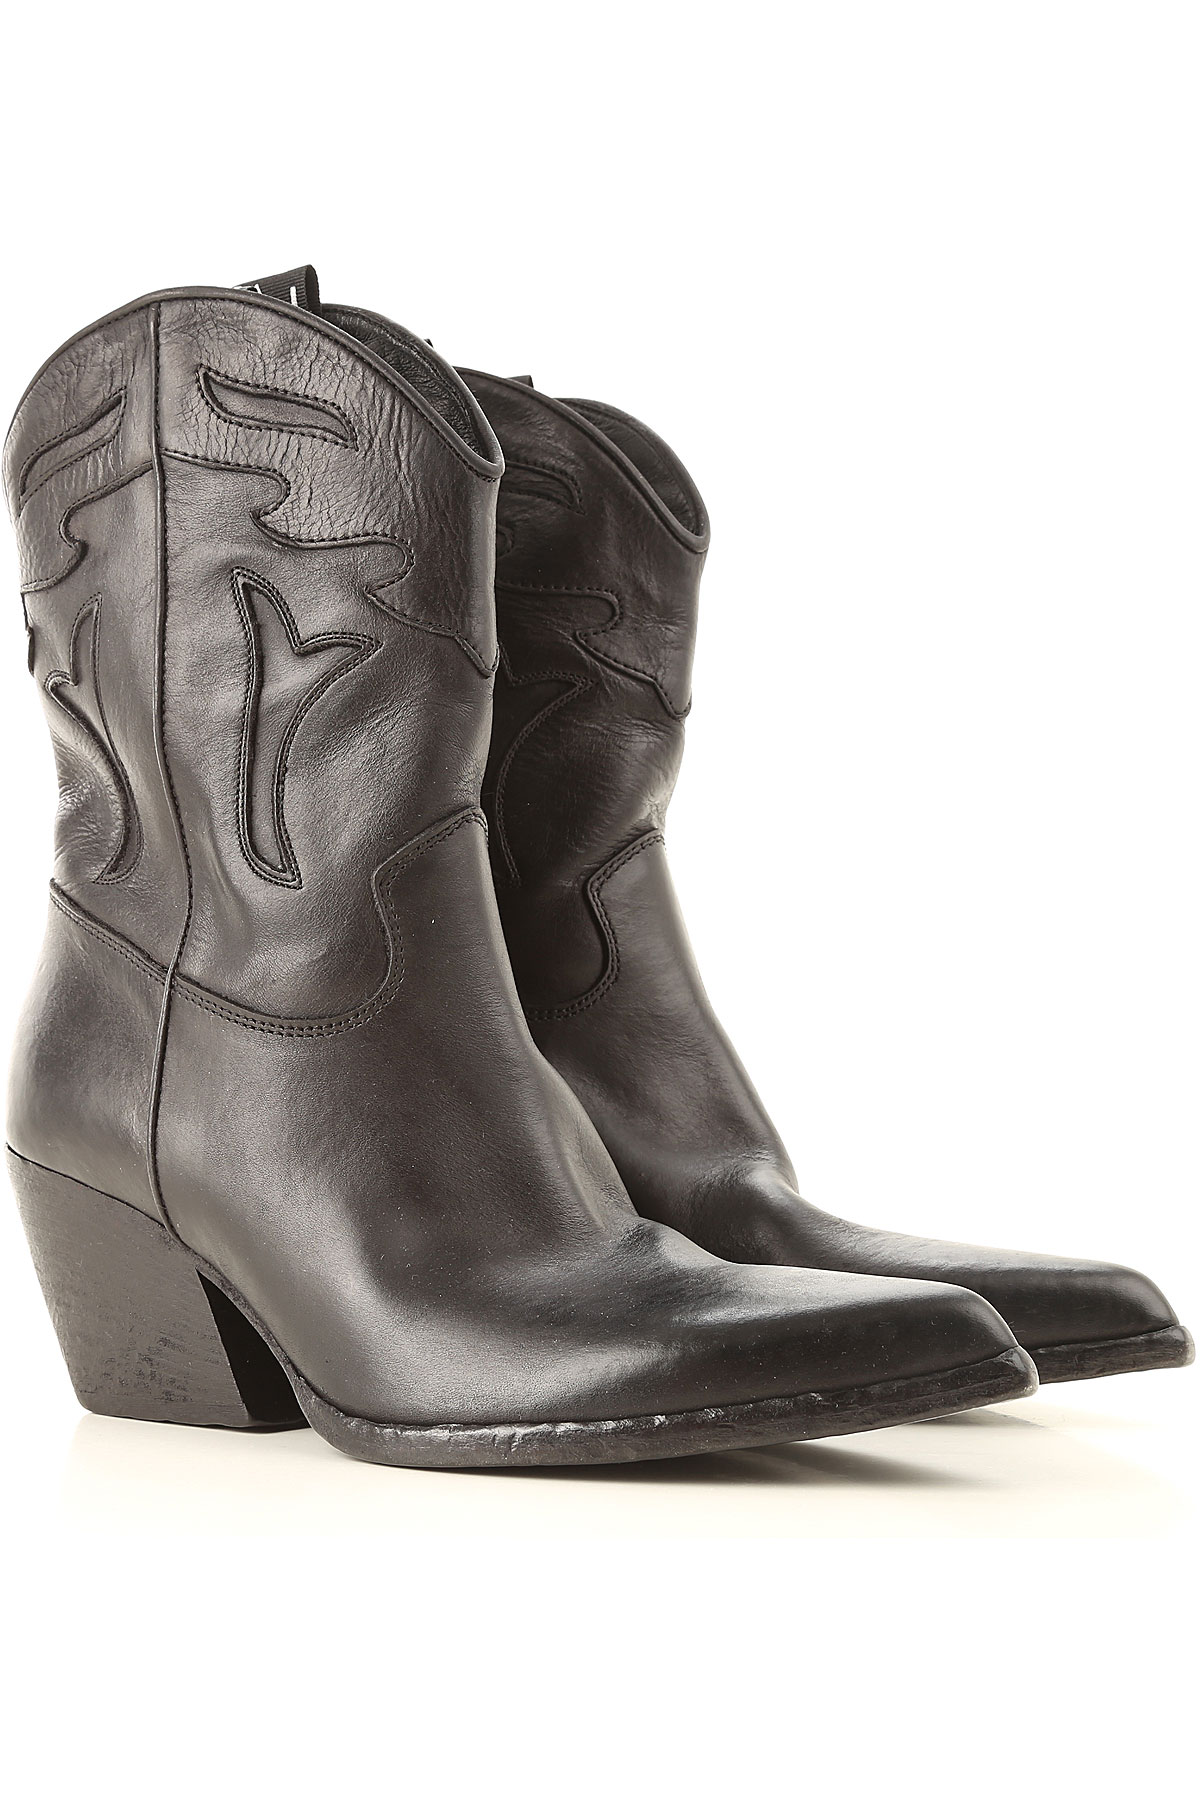 Elena Iachi Boots for Women, Booties On Sale, Black, Leather, 2019, 10 6 7 9